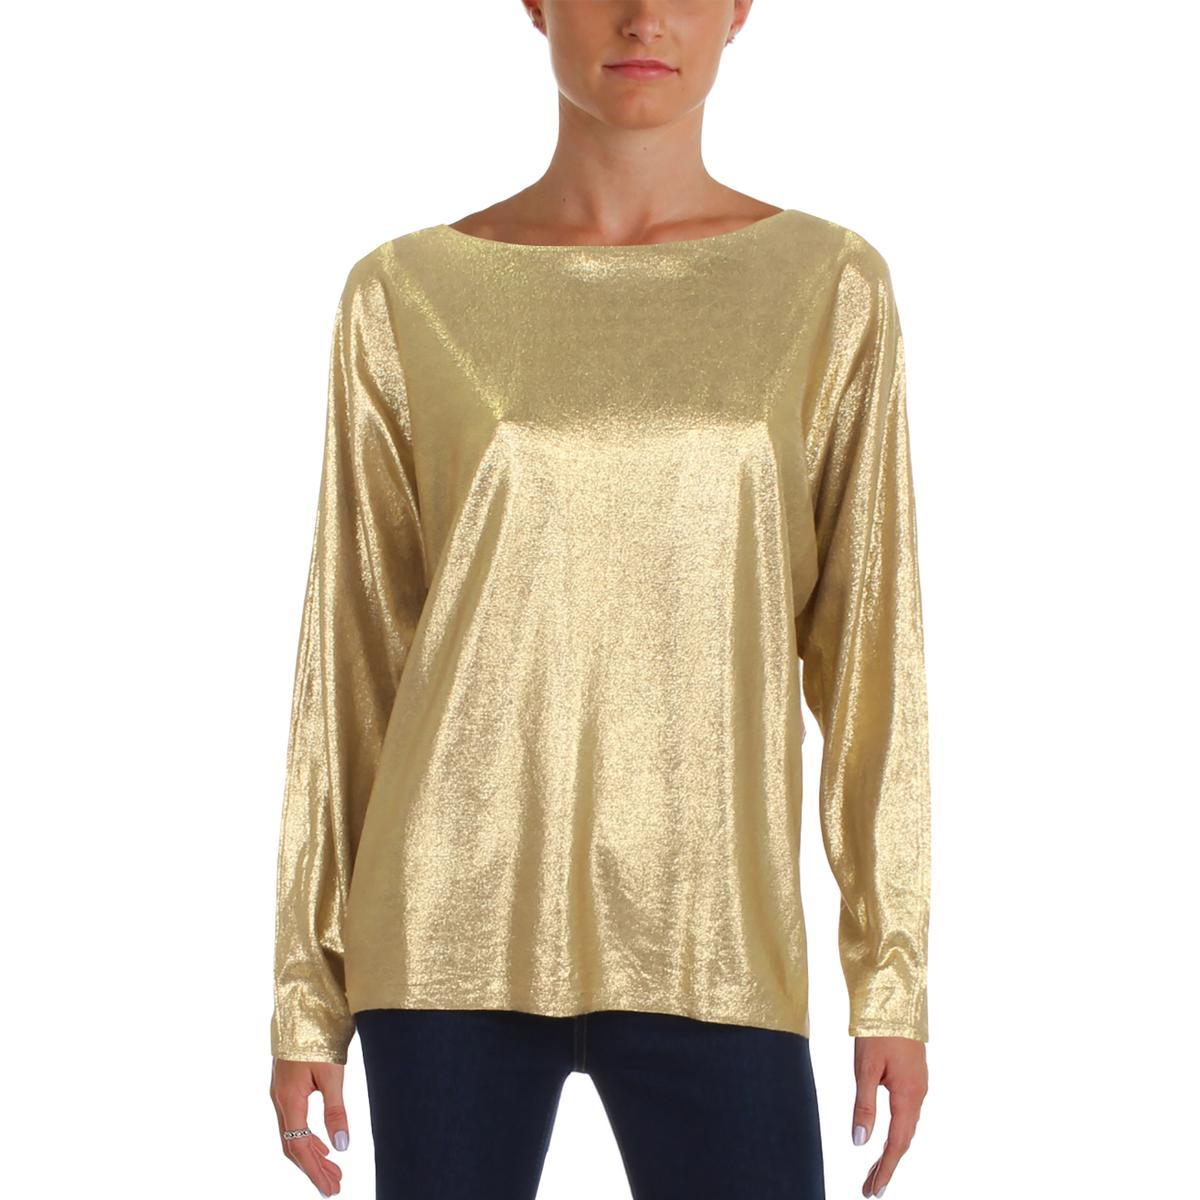 Lauren Ralph Lauren Womens Gold Metallic Sparkly Party Sweater L ... de5519e33